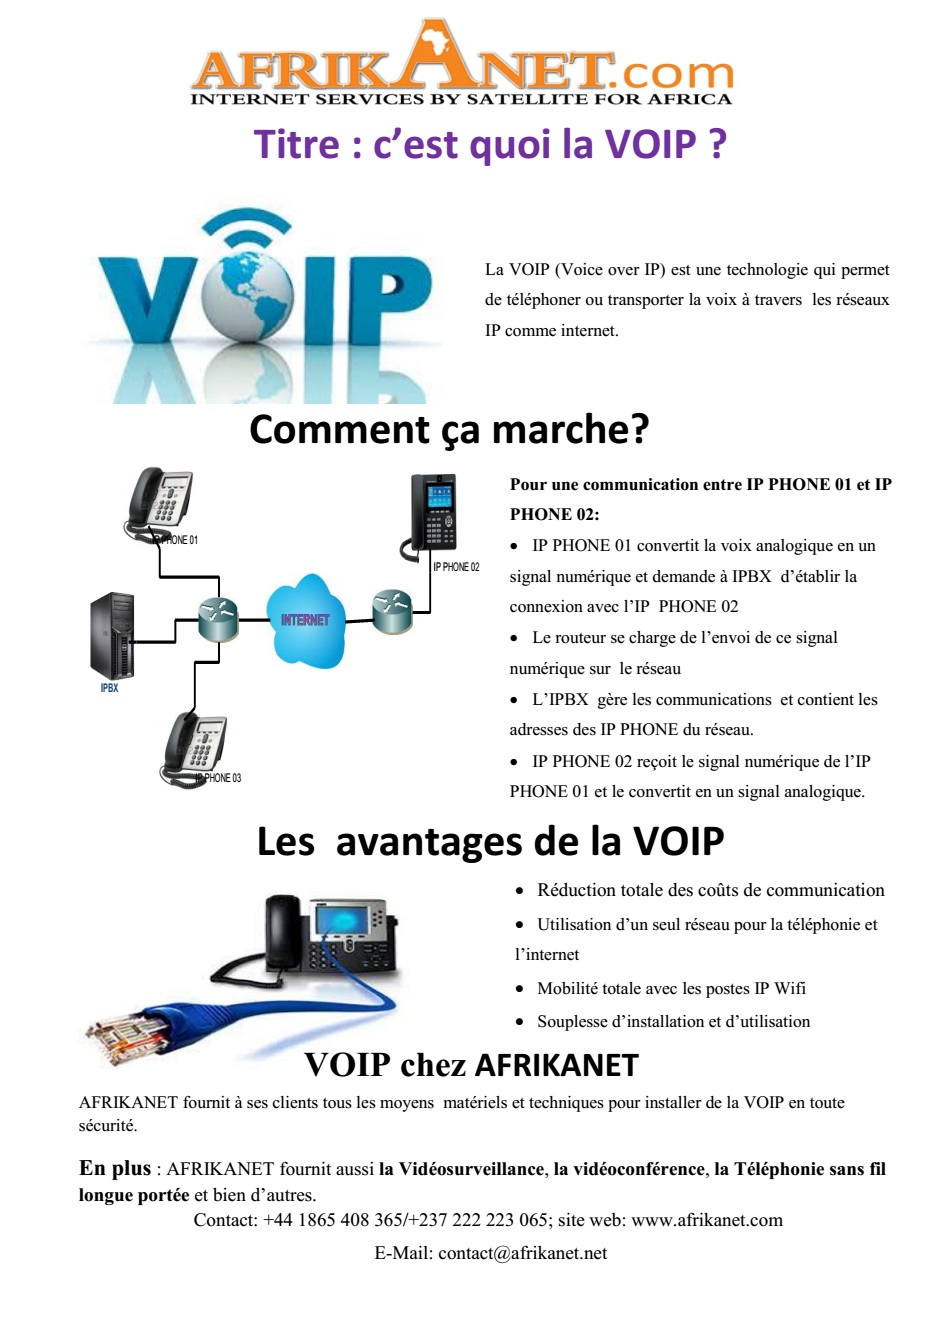 VOIP_AFRIKANET